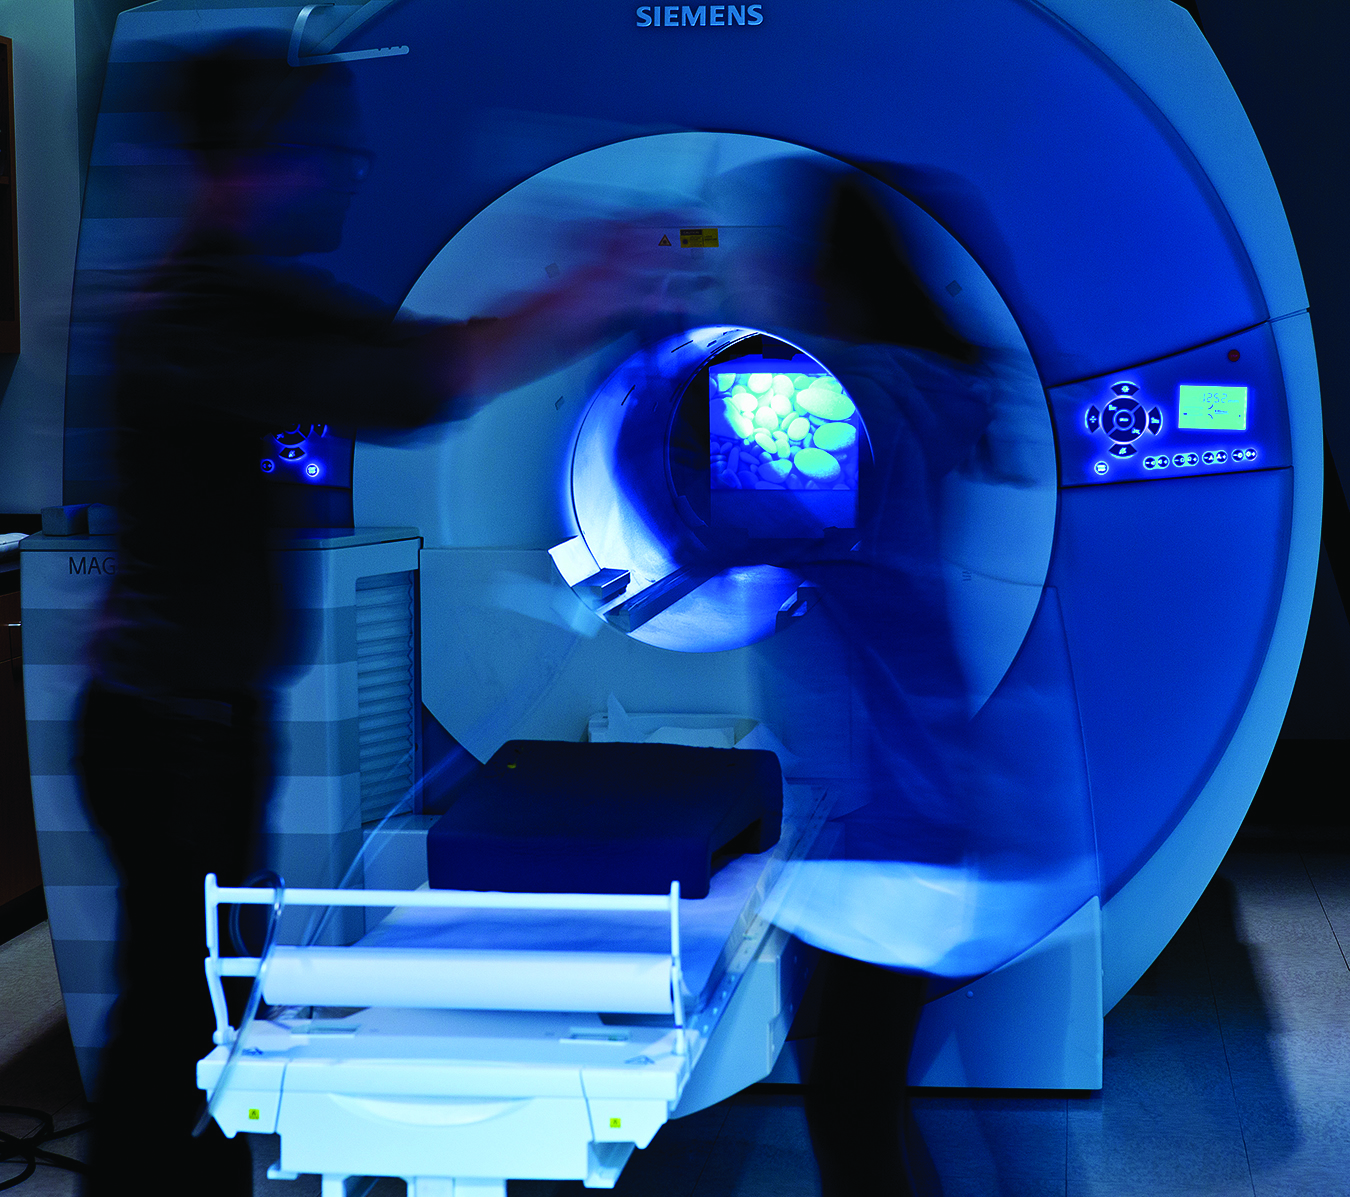 BCI researchers use the functional magnetic resonance imaging scanner to study the human mind. (Photo/John Livzey)